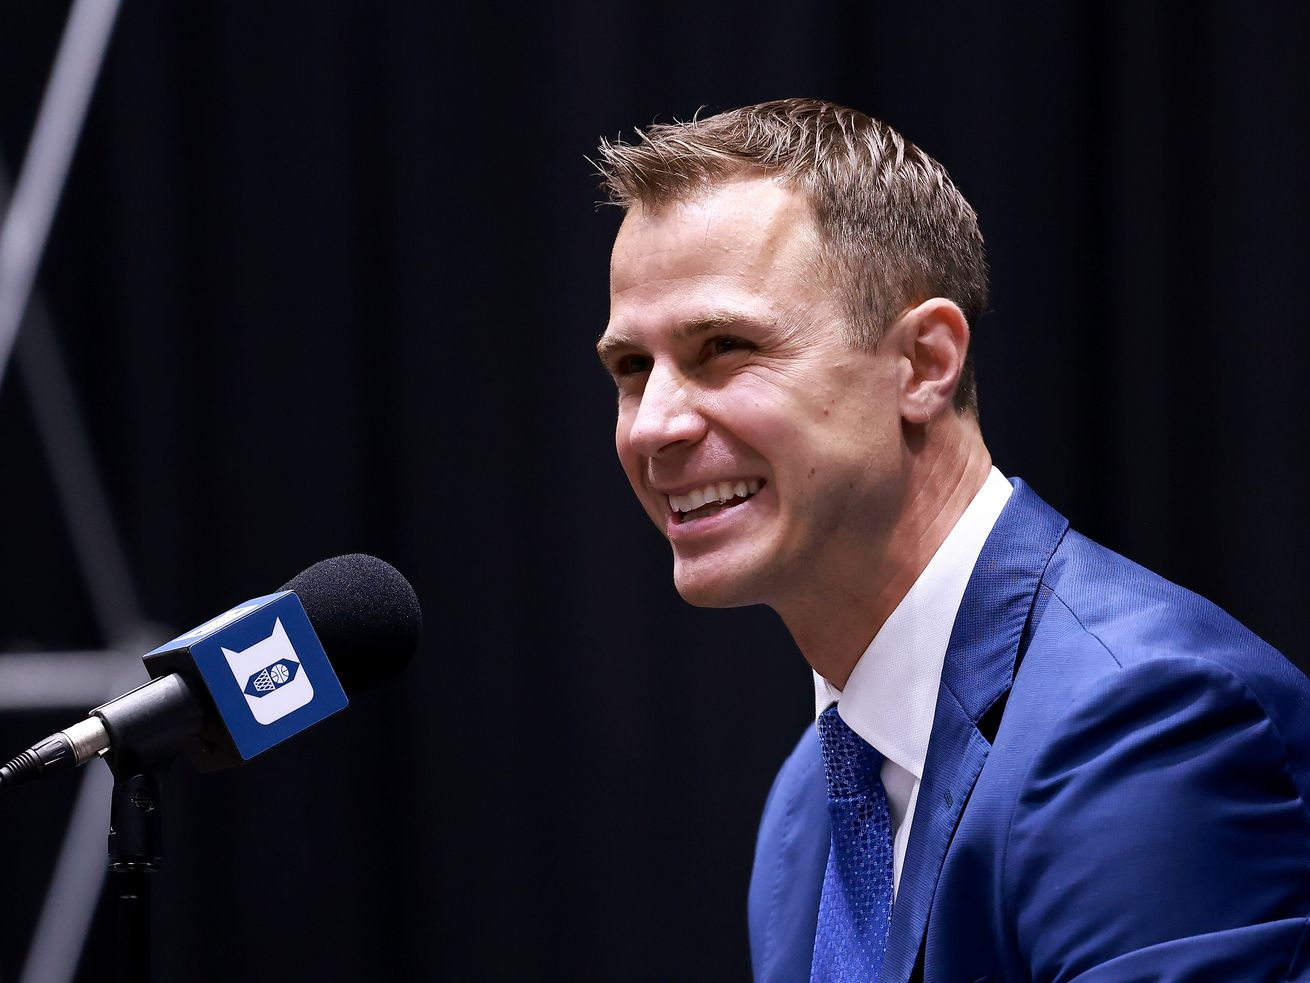 Jon Scheyer speaks after being named the 20th coach of the Duke Blue Devils during a press conference at Cameron Indoor Stadium.